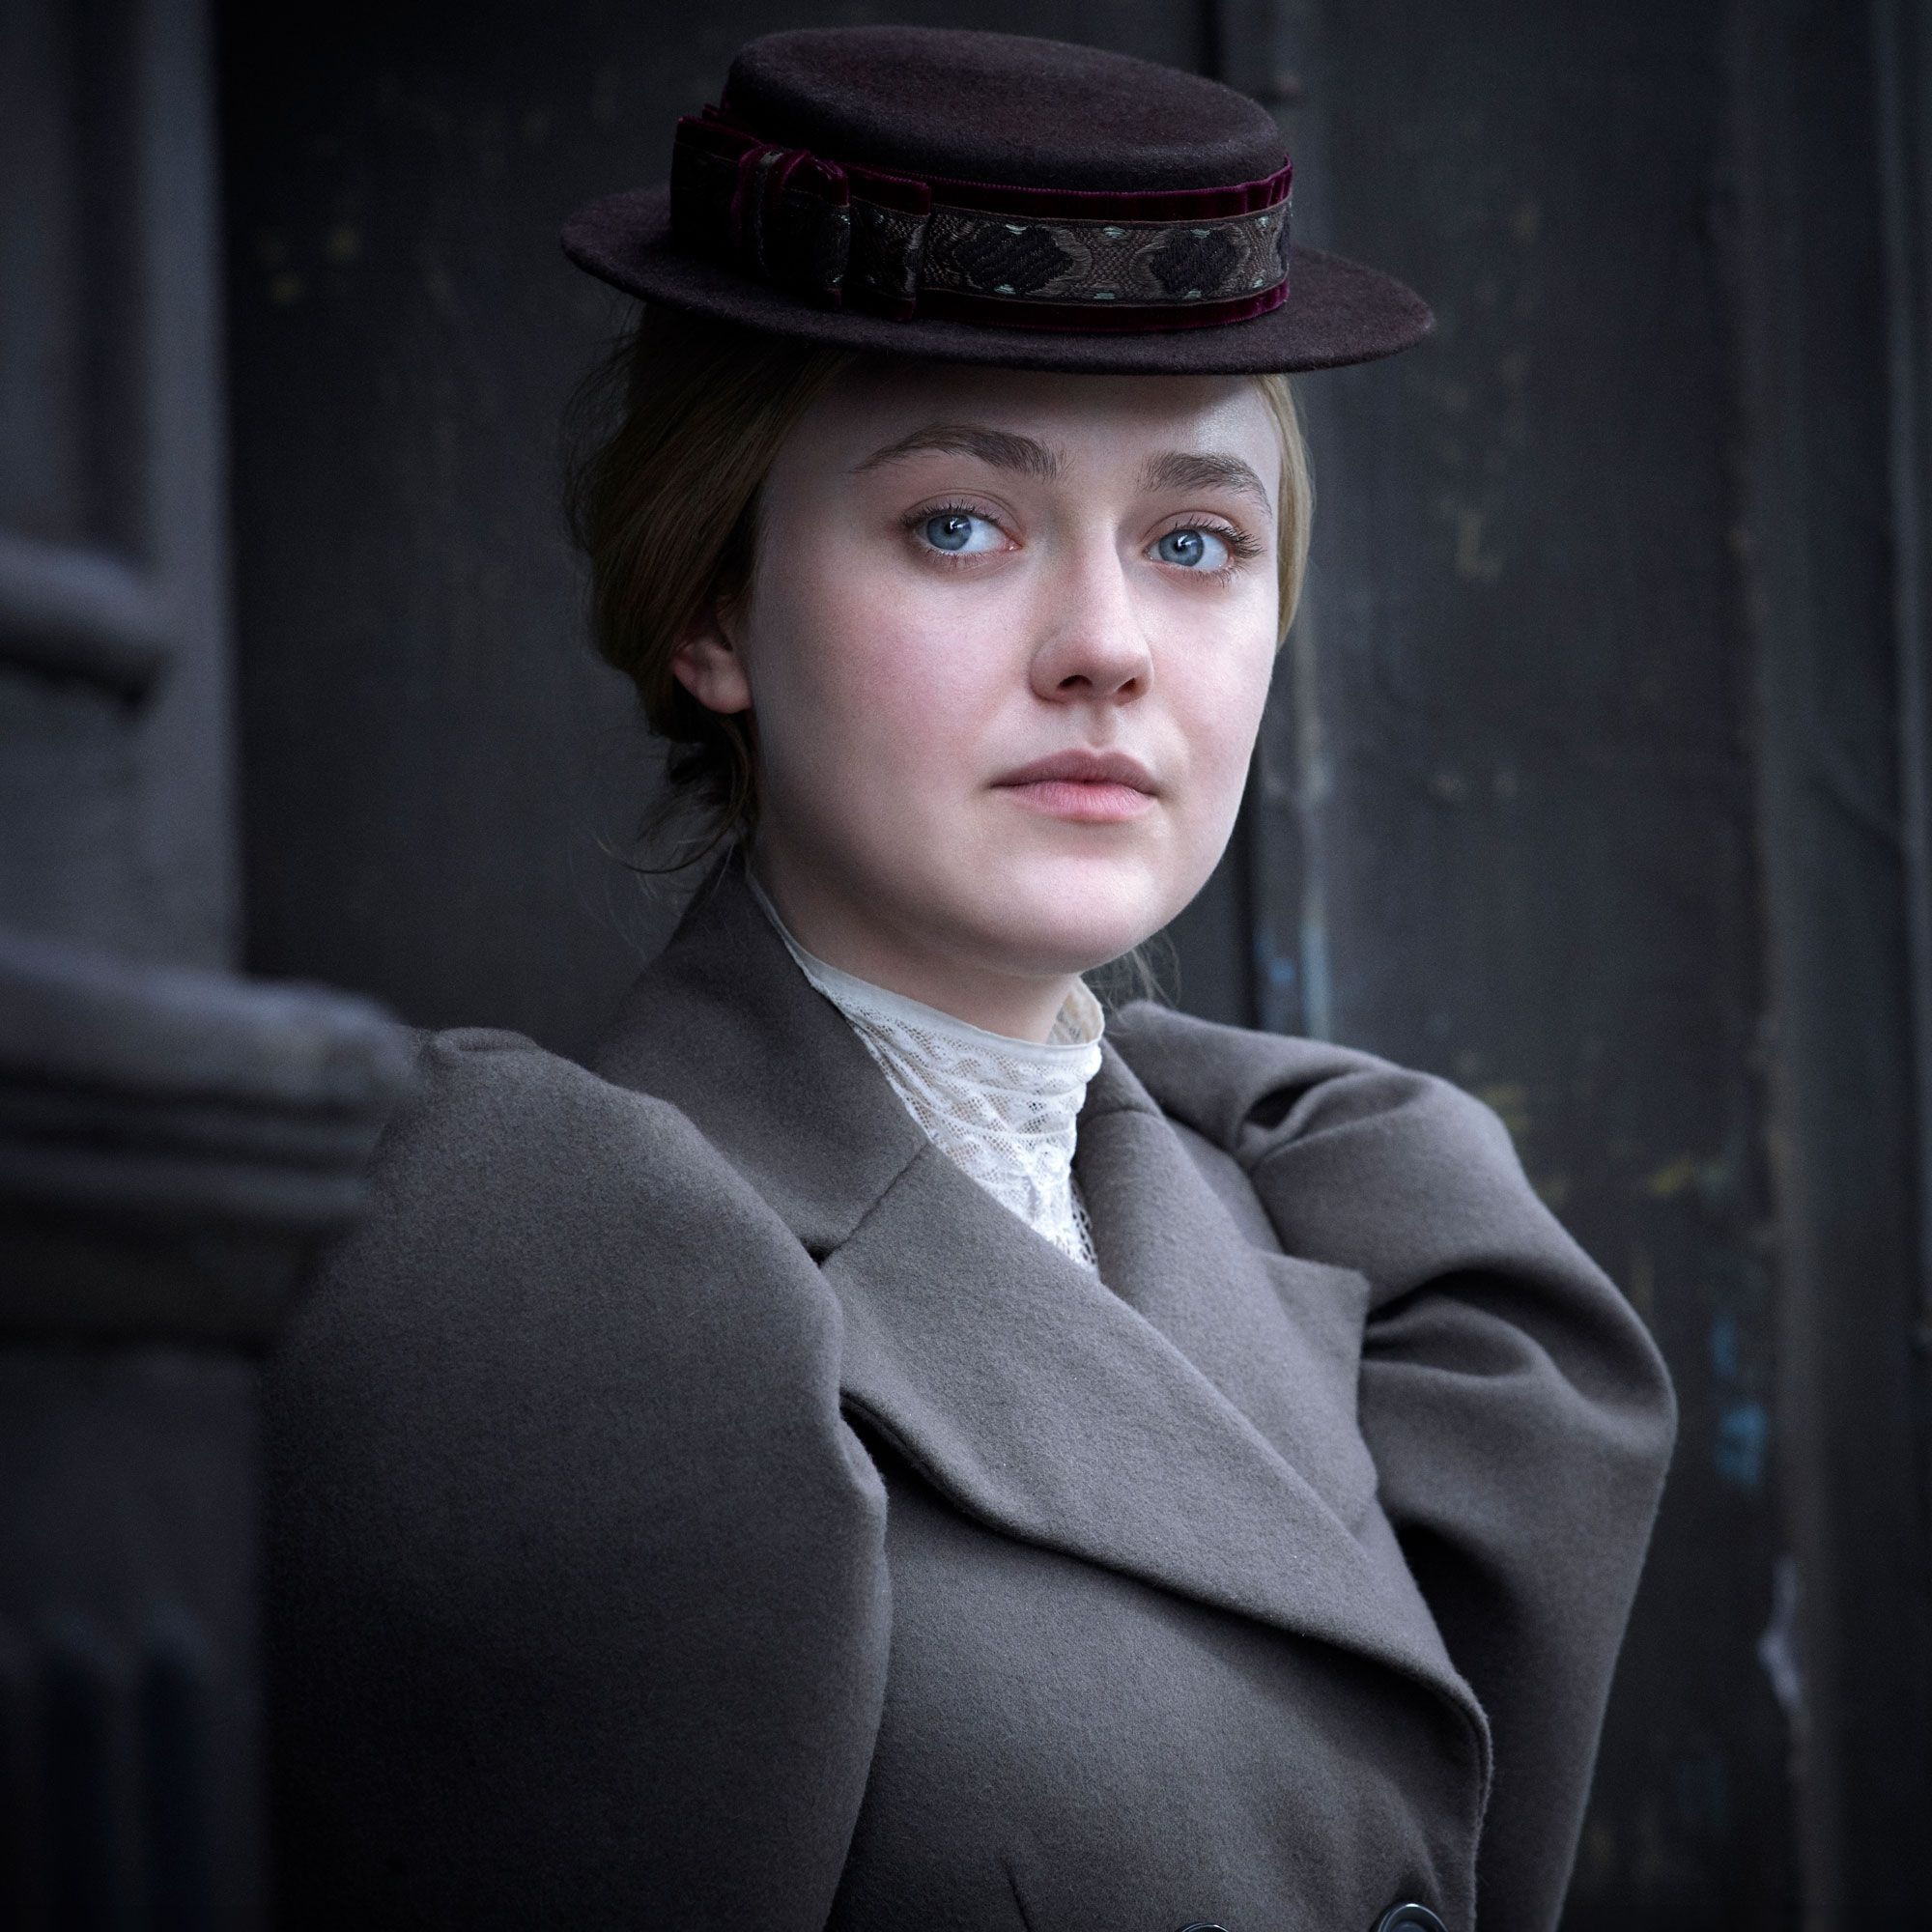 The Alienist Season 3 Uk Premiere Date Cast Episodes And More